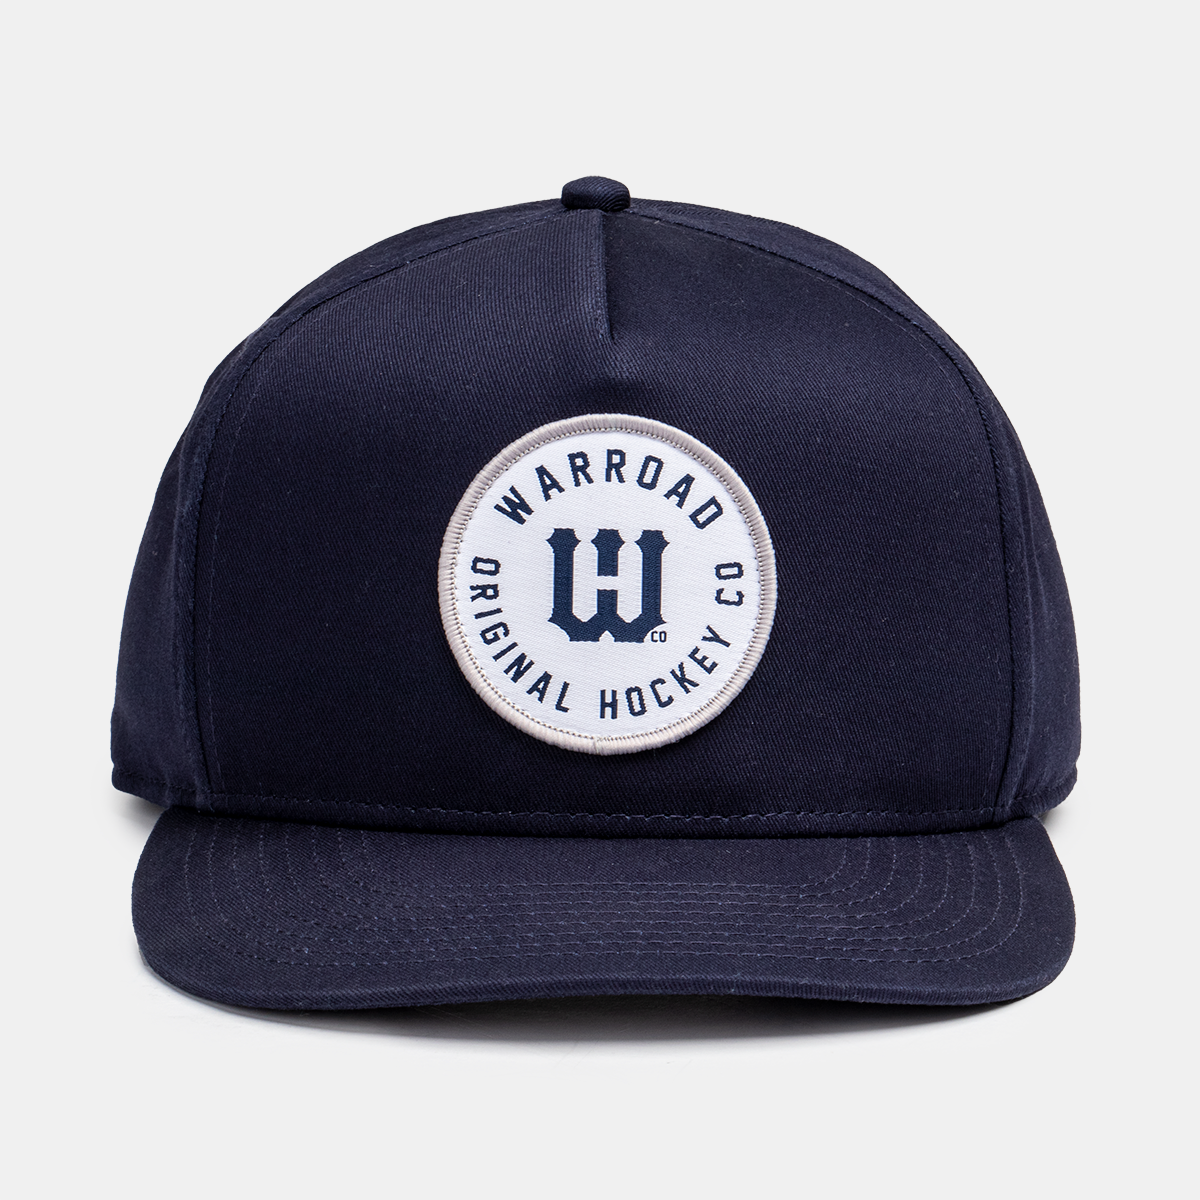 Warroad Player Collection Cap - Navy